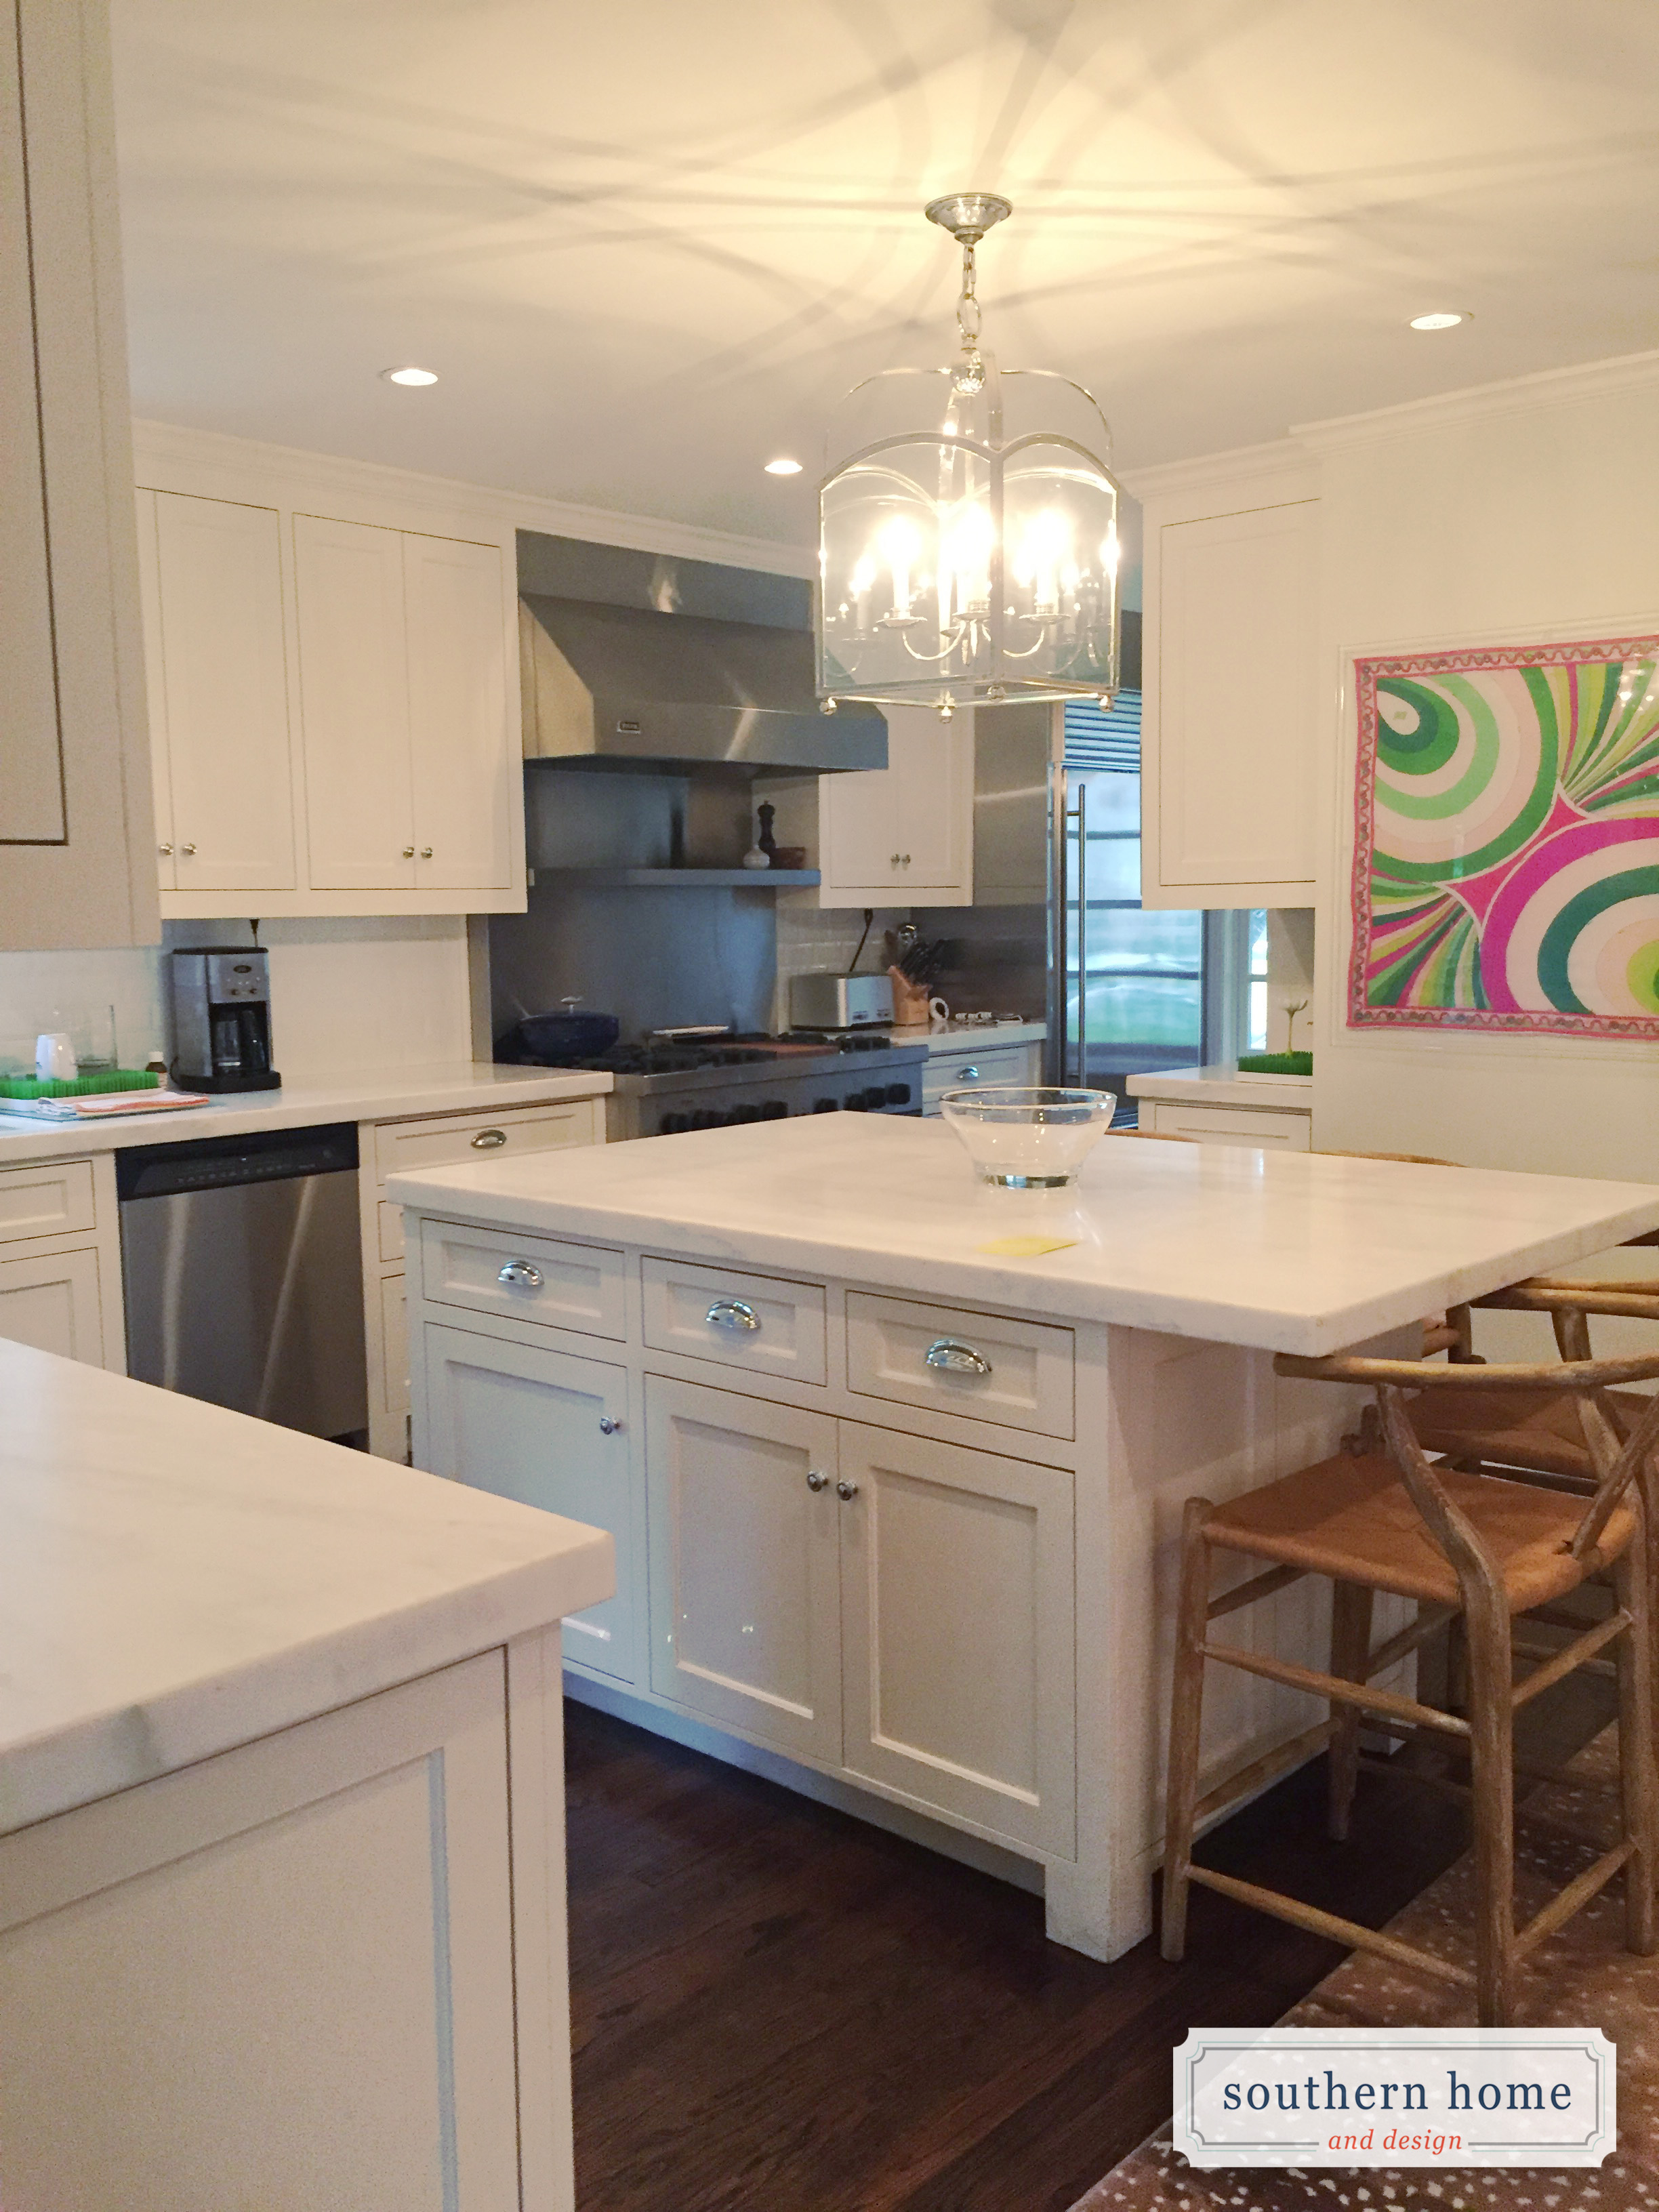 White kitchen with shaker style inset cabinets, honed danby marble countertops and stainless steel appliances.